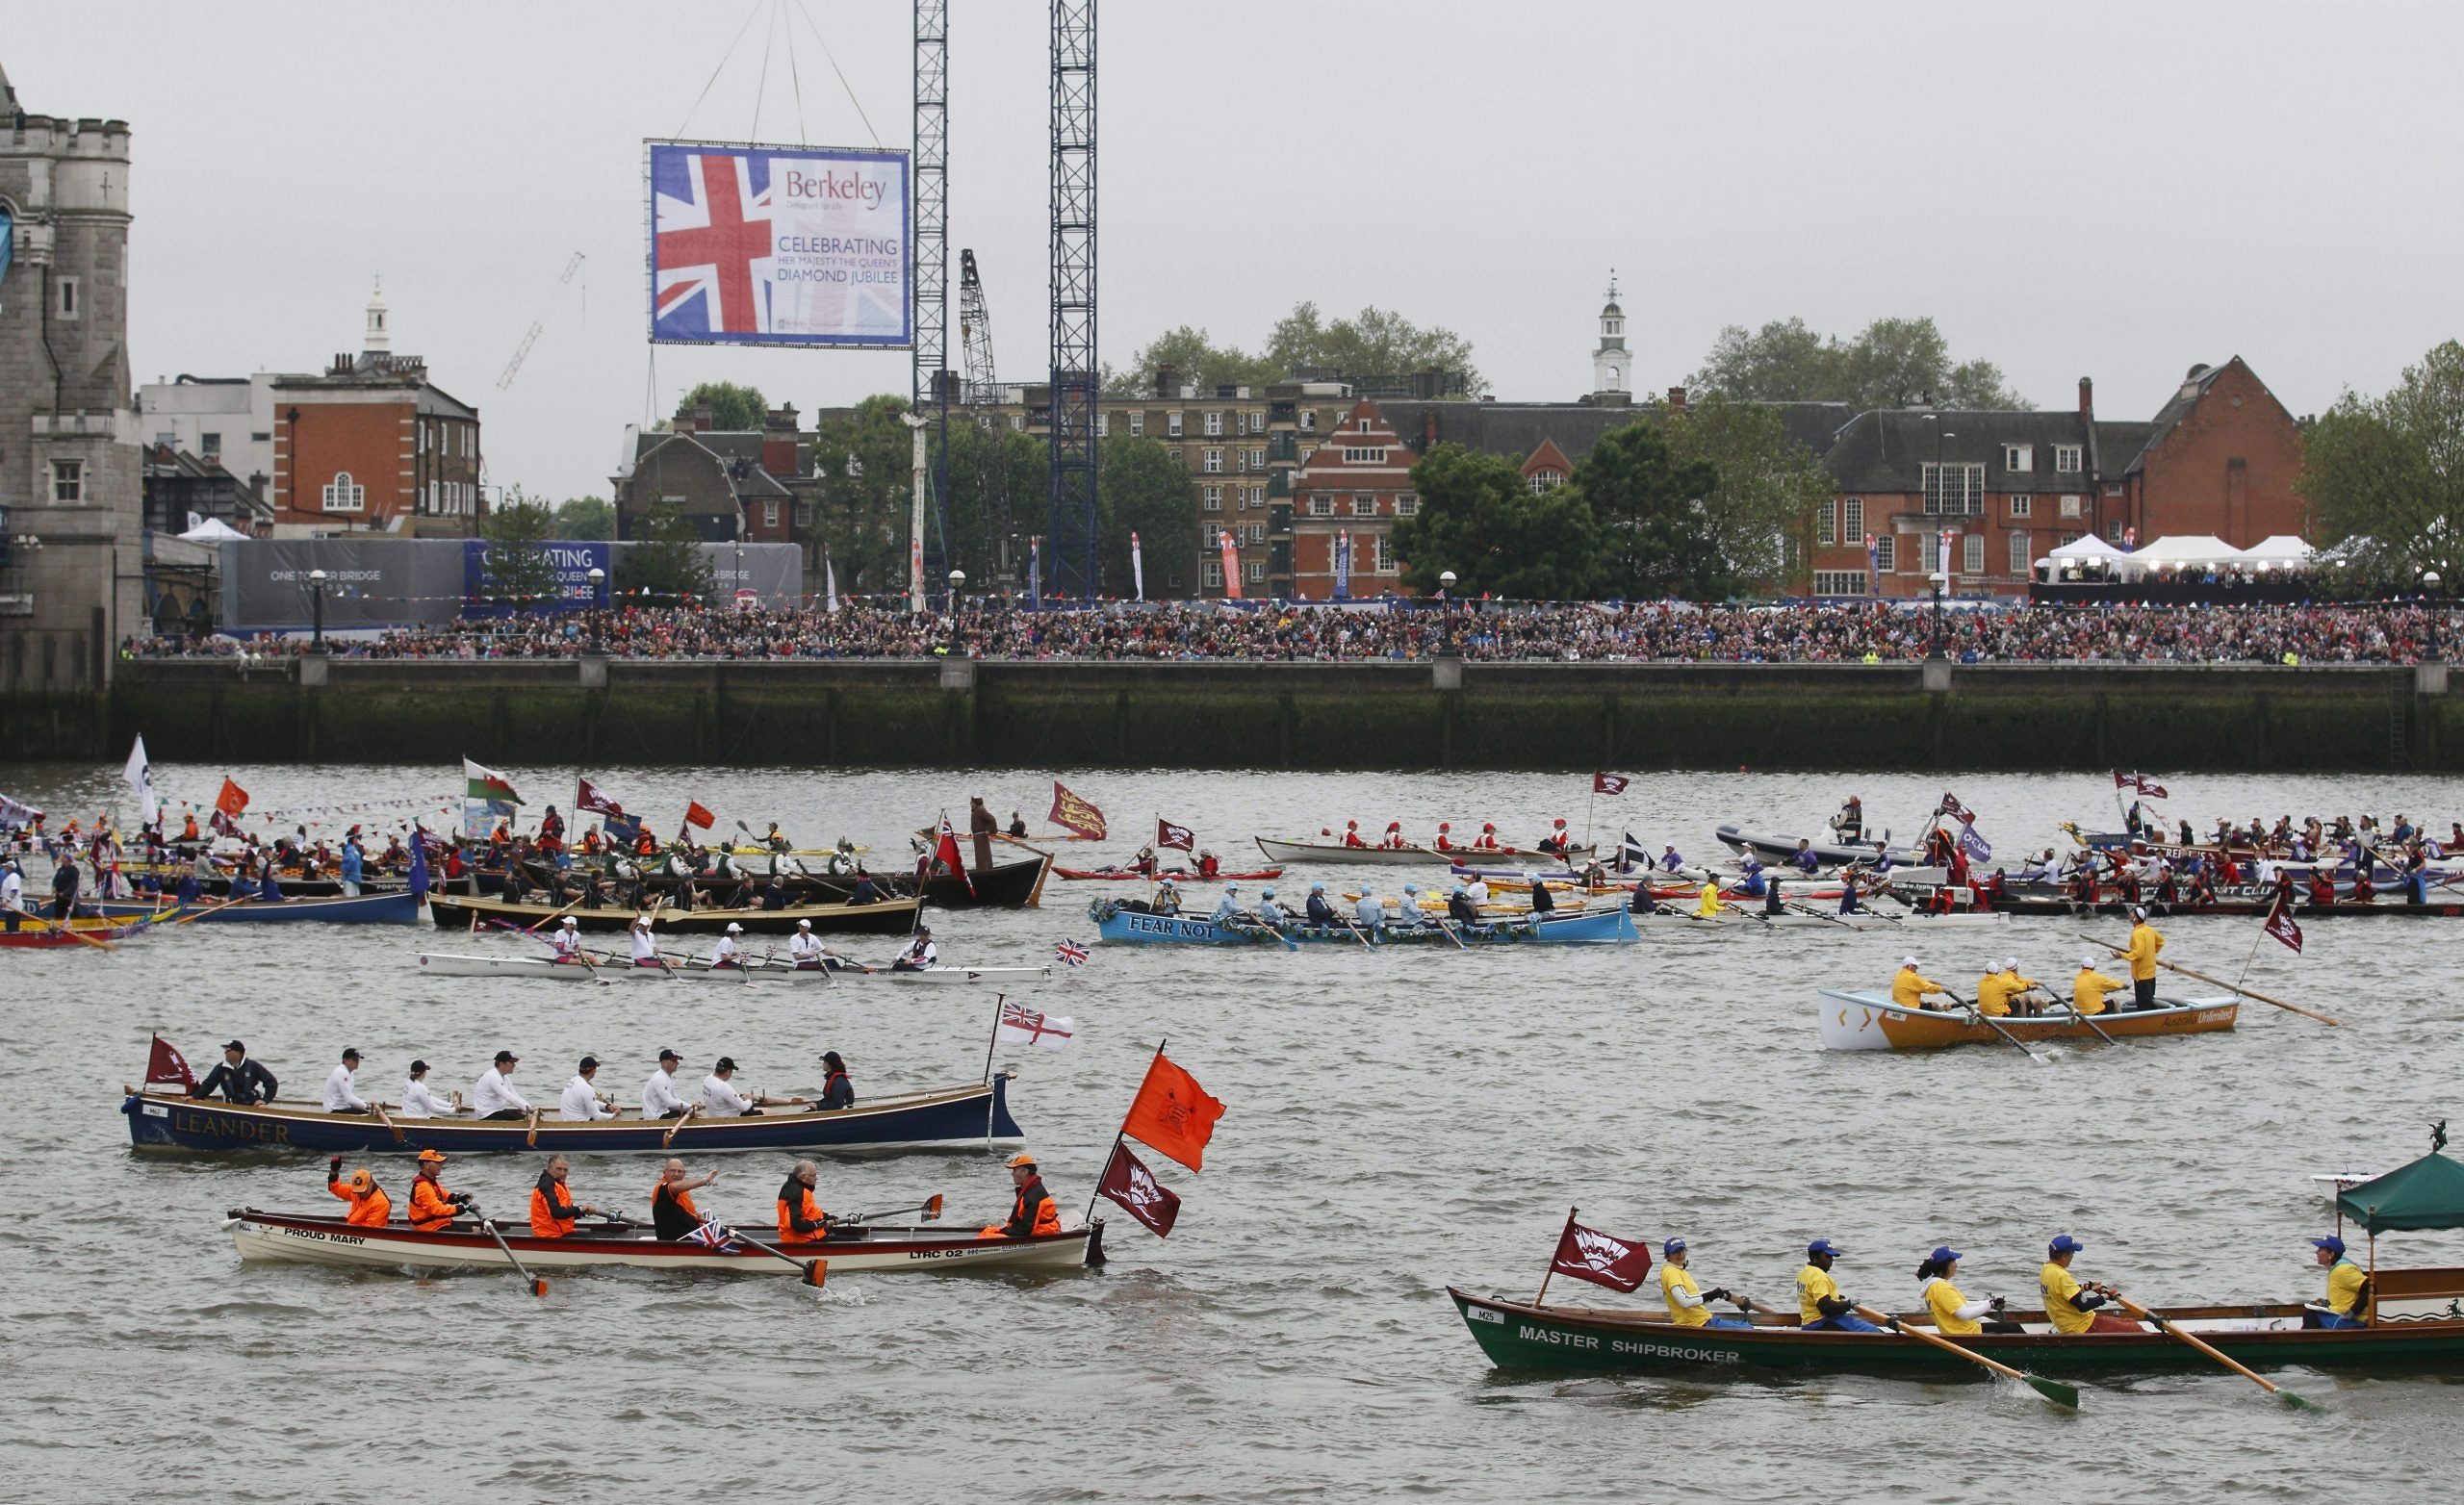 The naval battle for Brexit: Remain and Leave campaign boats have been warring on the Thames